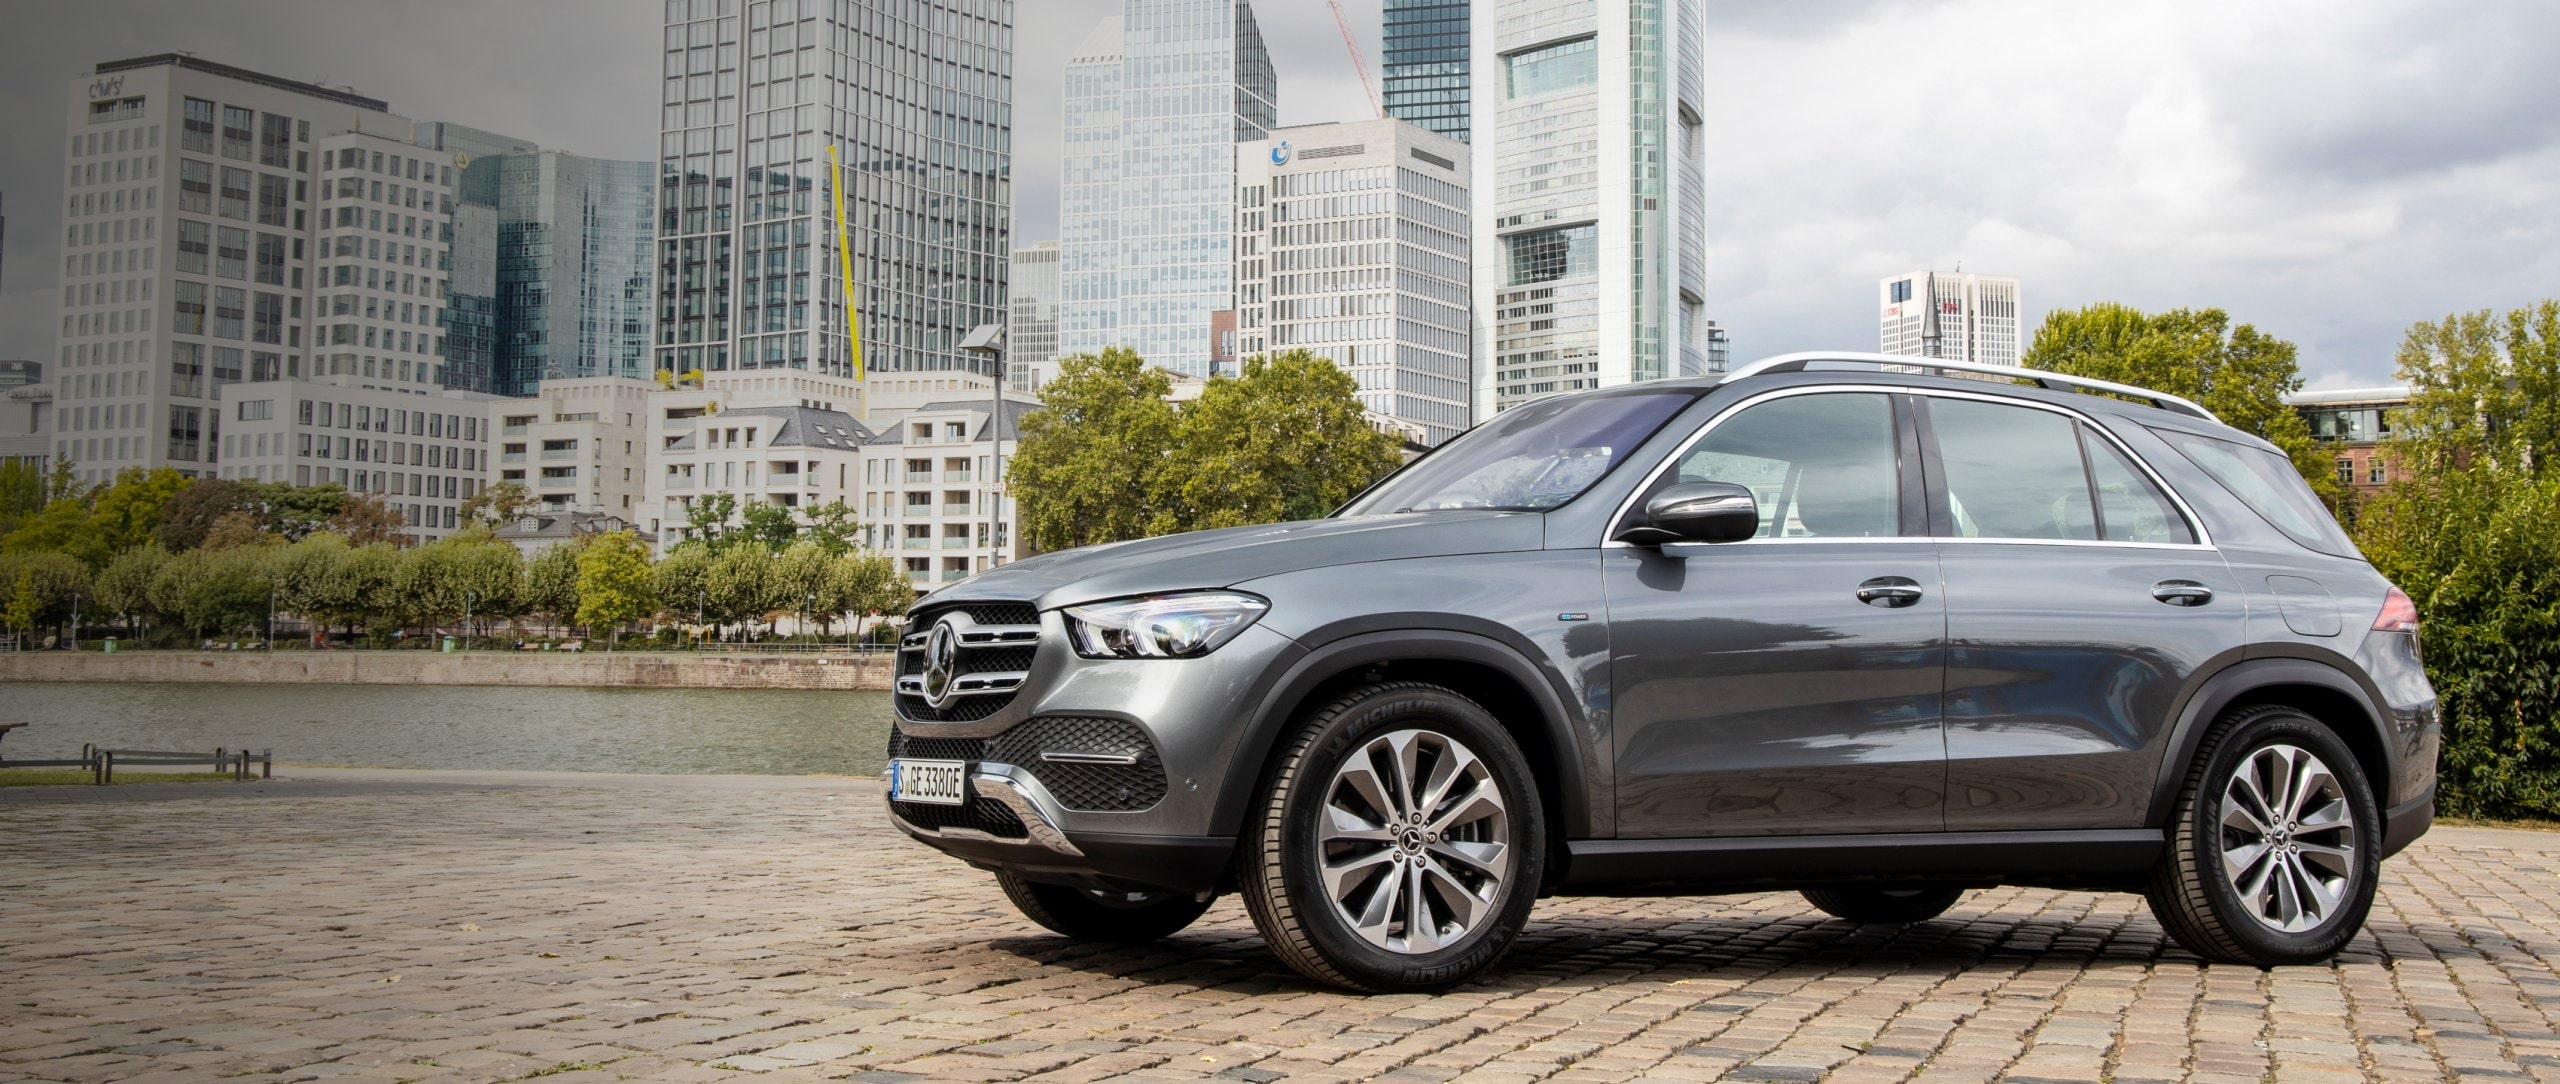 The new plug-in hybrid Mercedes-Benz GLE 350 de 4MATIC (W 167) in selenite grey in front of a skyline.